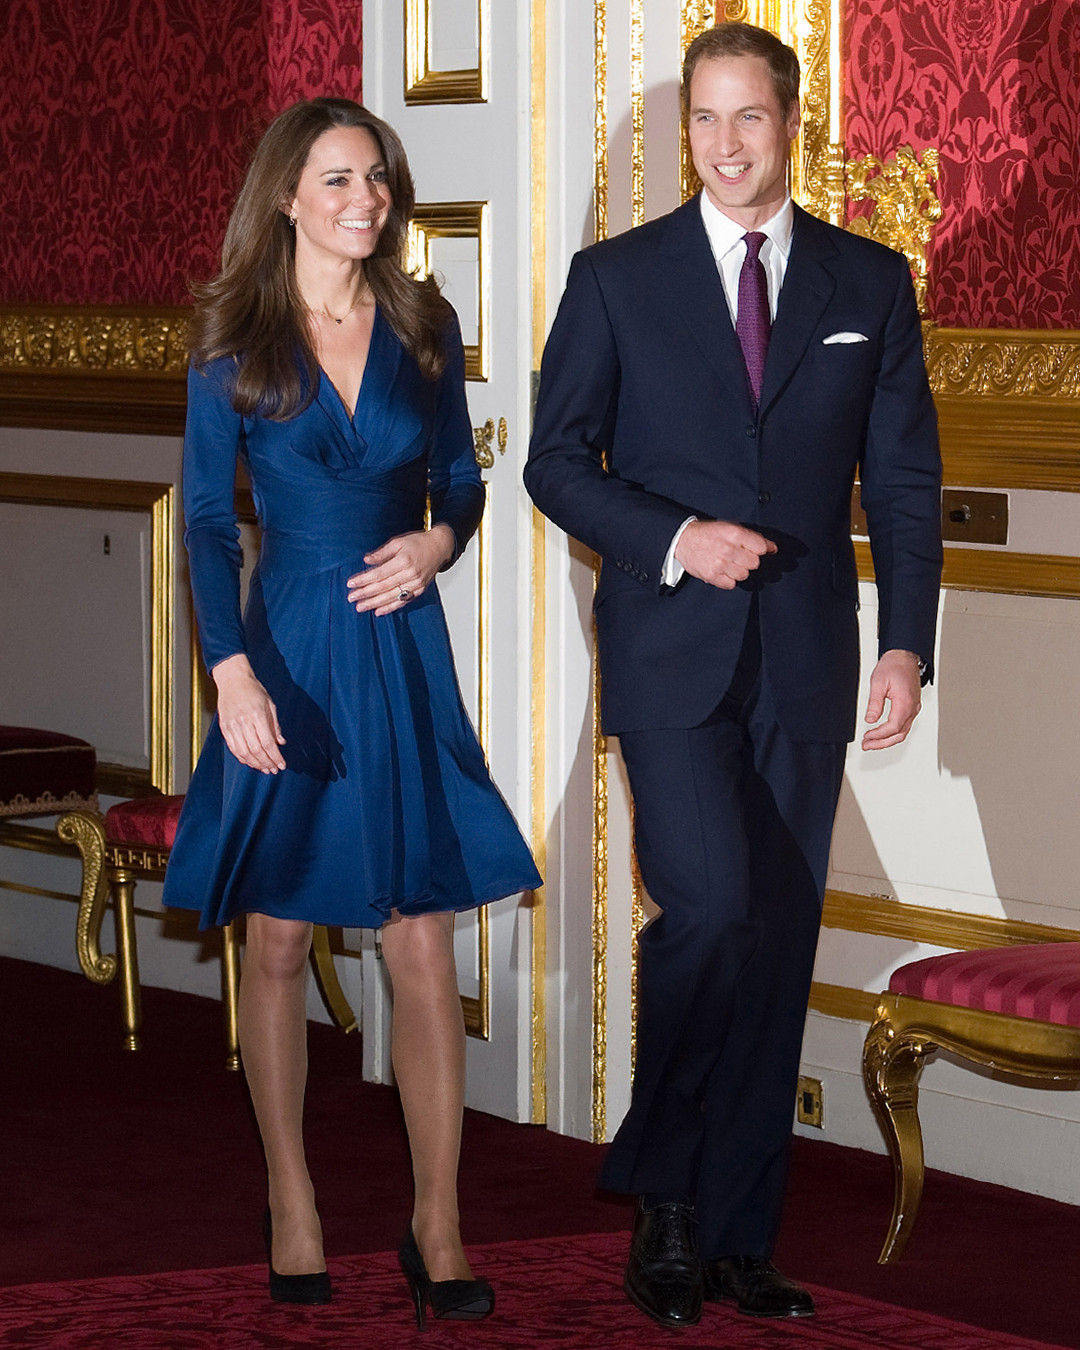 If Kate Middleton's Engagement Dress Came in Every Color…